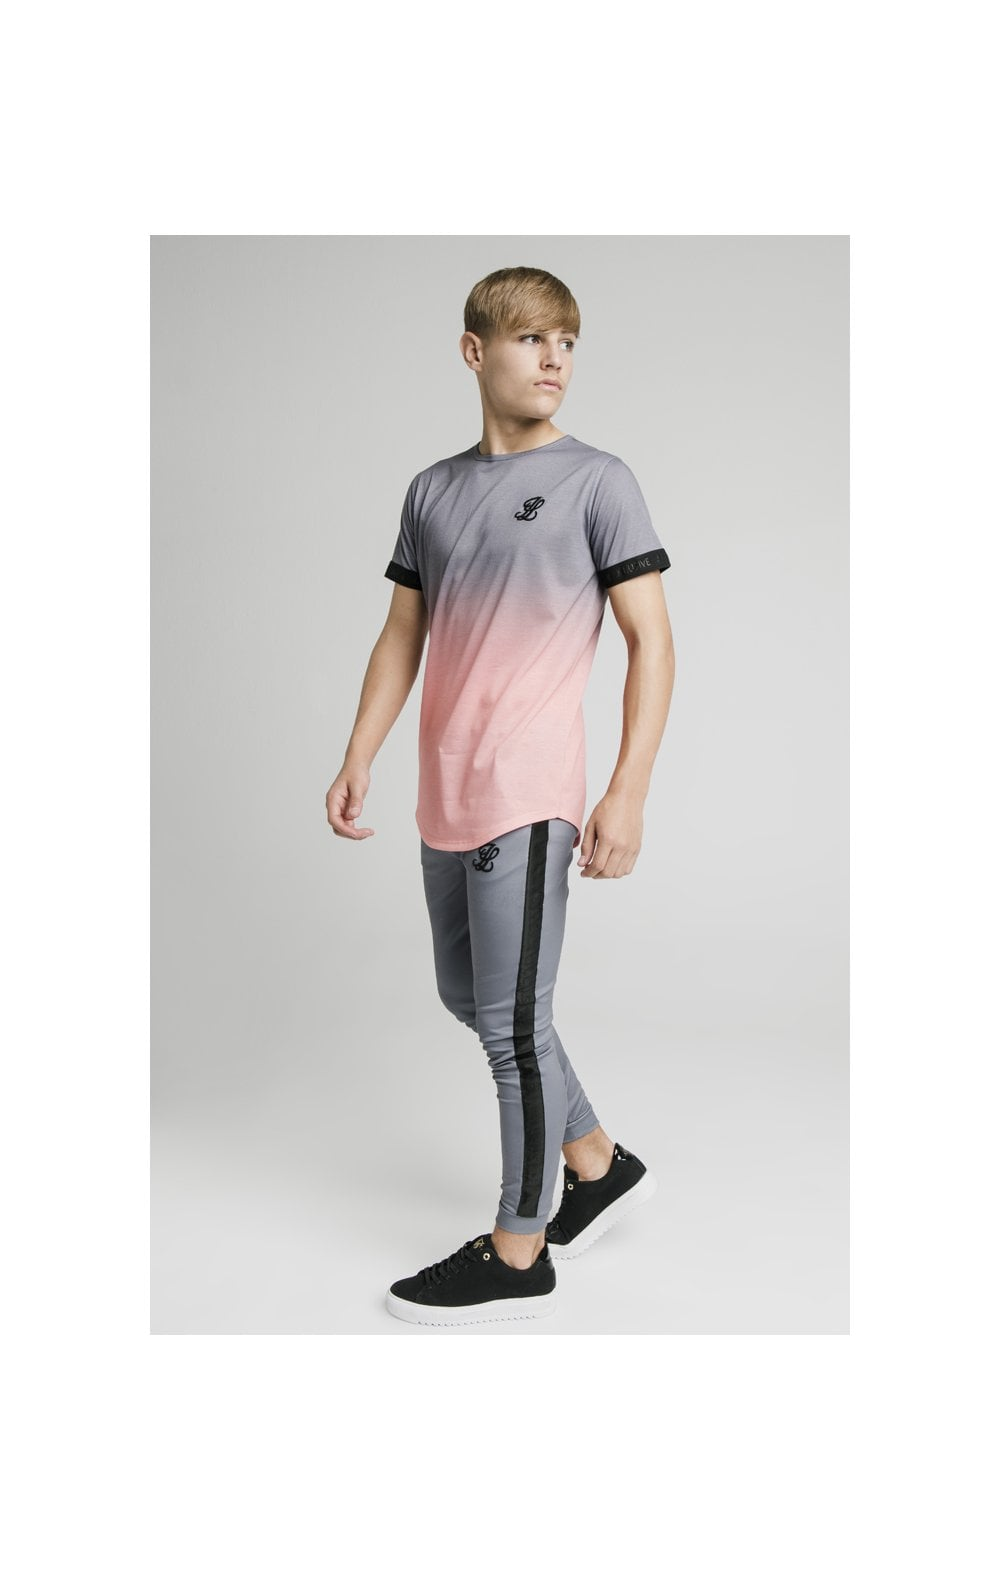 Load image into Gallery viewer, Illusive London Fade Tech Tee - Grey & Peach (3)